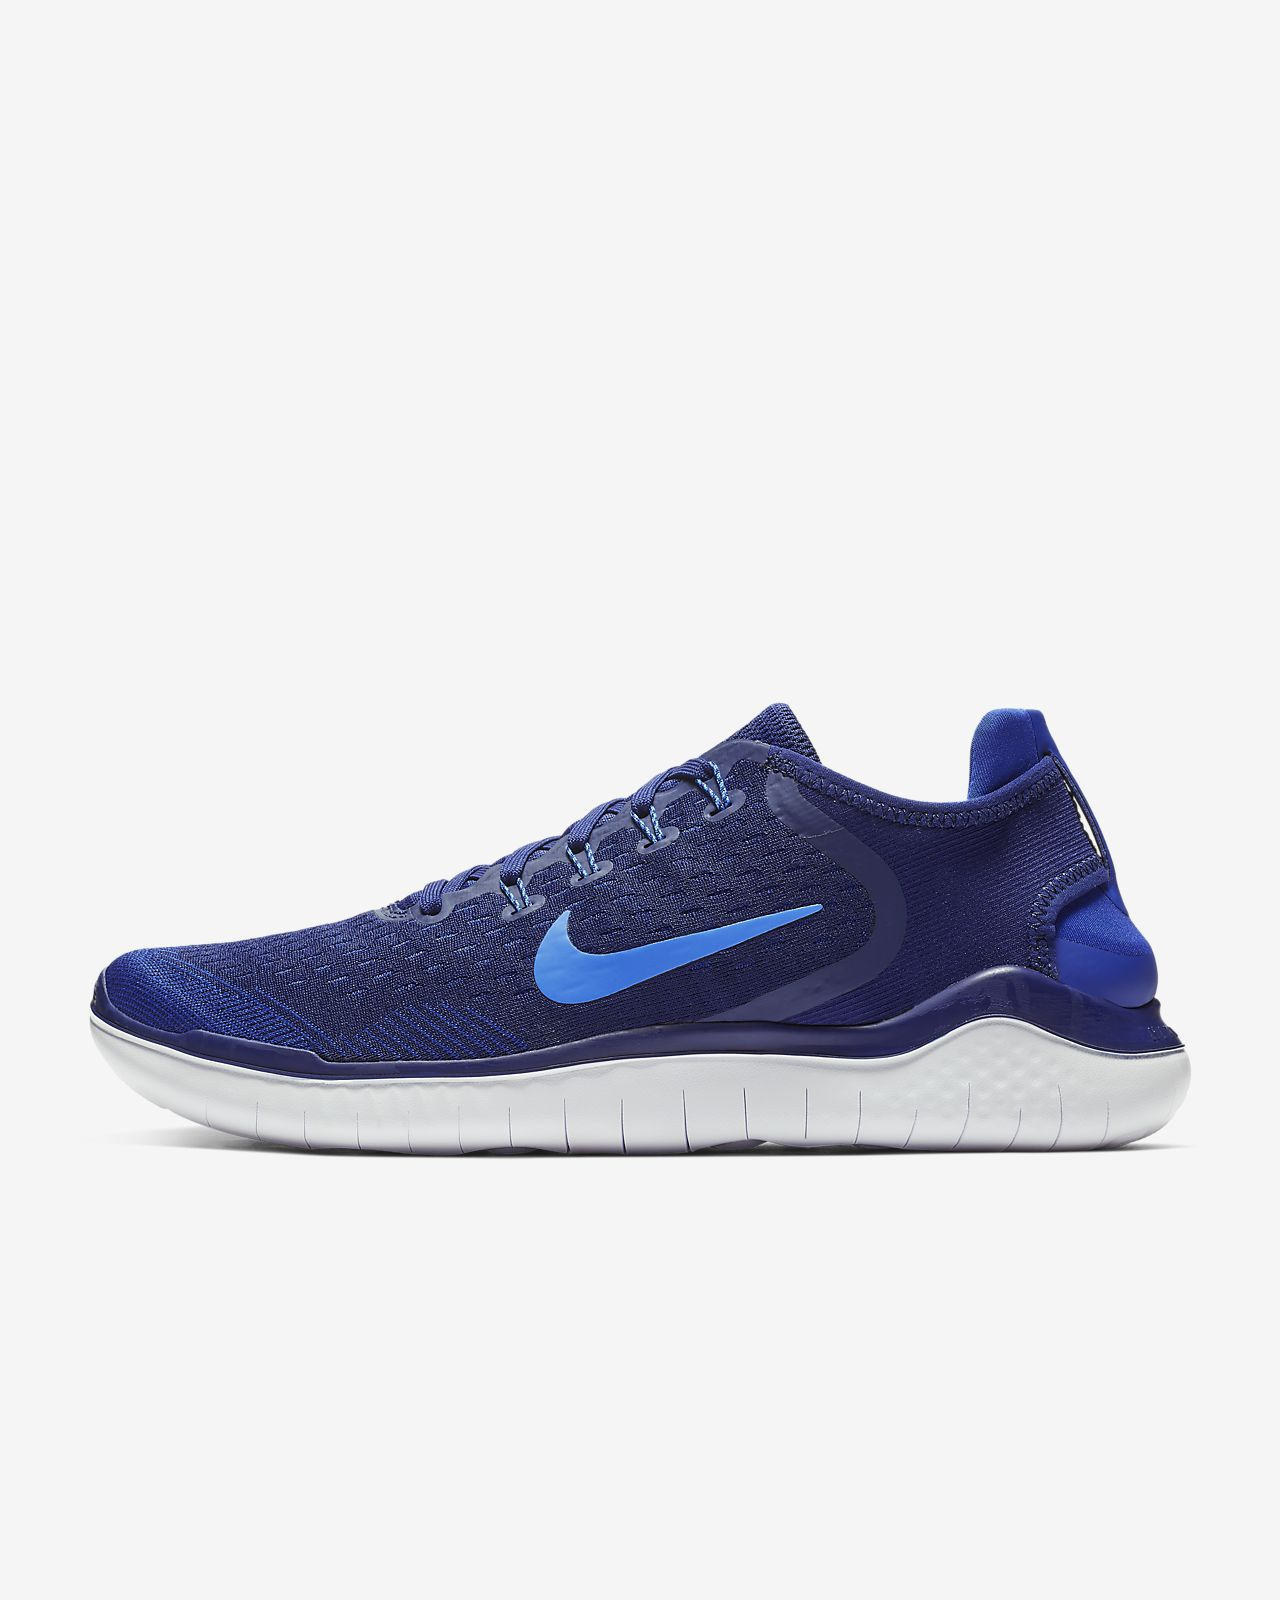 Nike Free RN Hombre